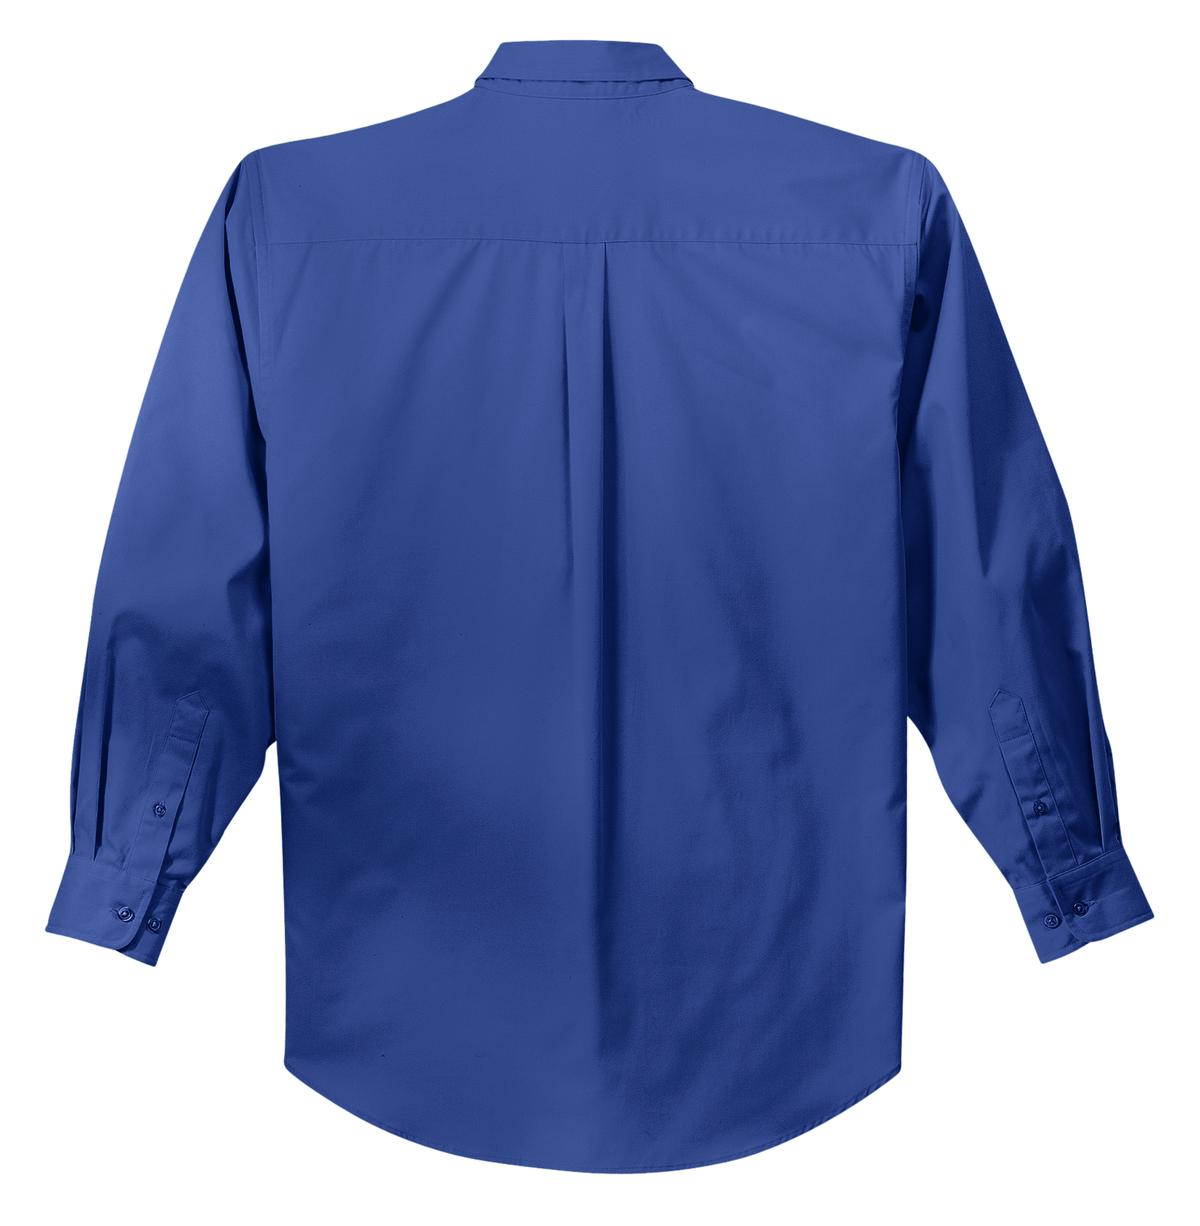 Mafoose Men's Tall Long Sleeve Easy Care Shirt Royal/ Classic Navy-Back